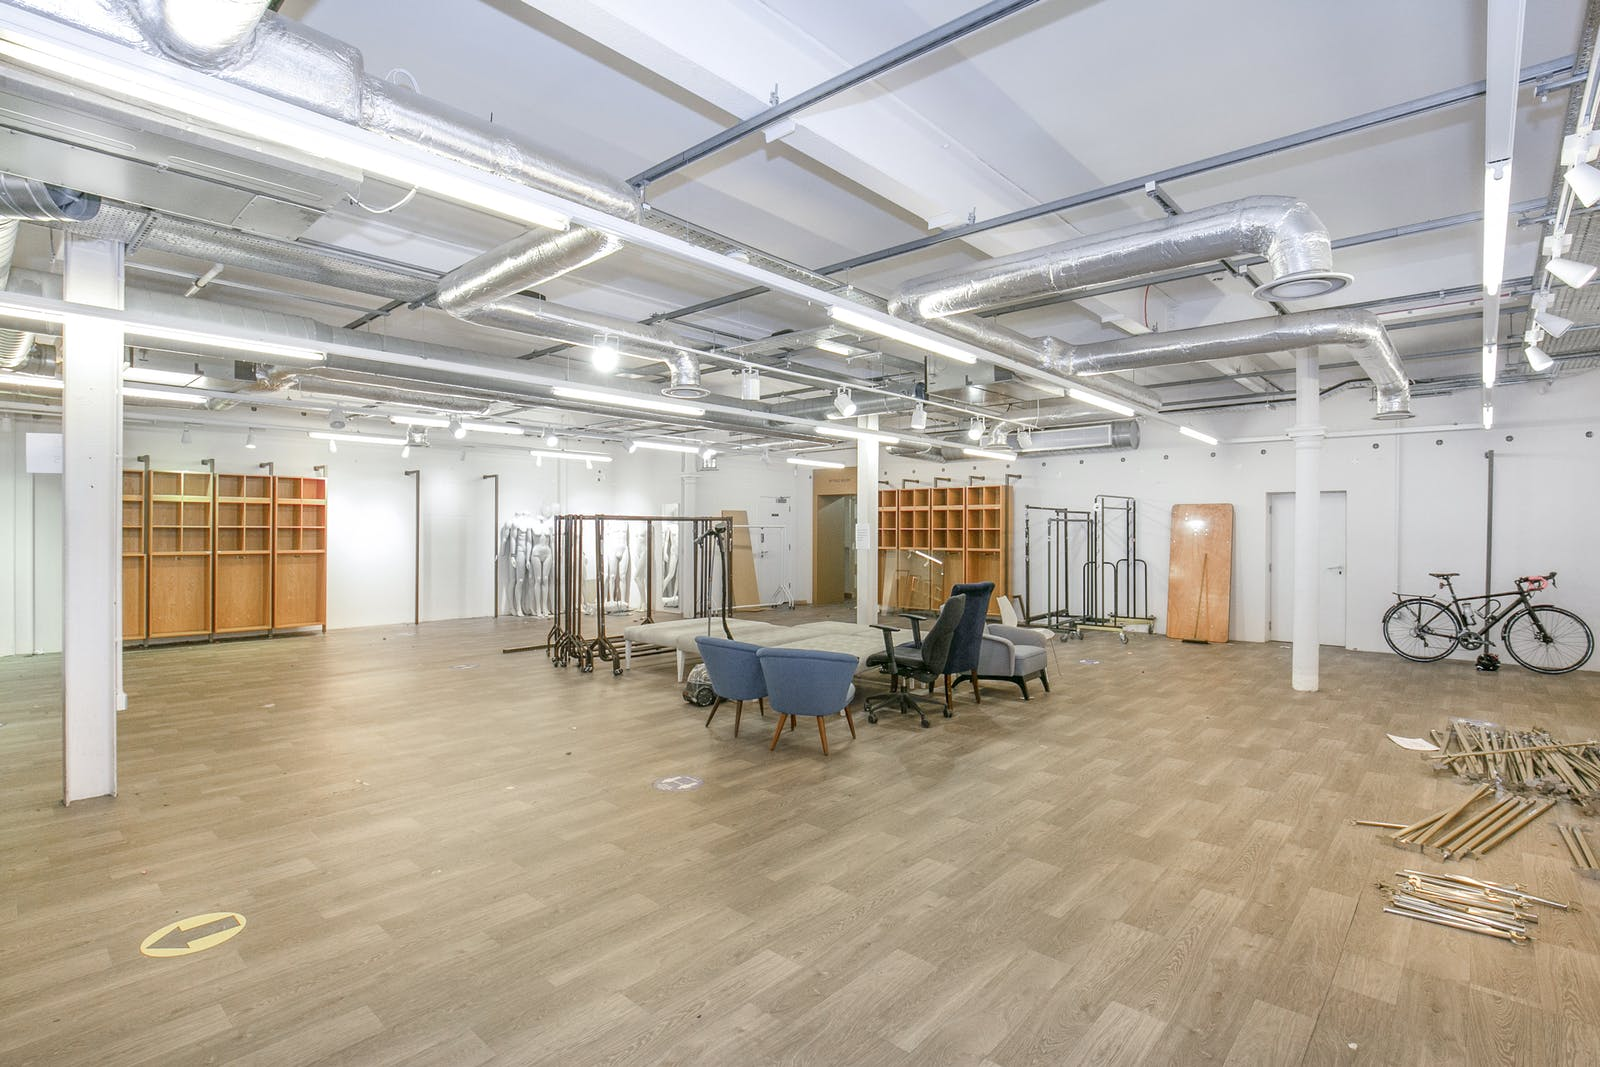 7-9 Chatham Place, London, Office / Industrial / Trade Counter / Retail / Showroom / Leisure / D2 (Assembly and Leisure) To Let - S25C7987.jpg